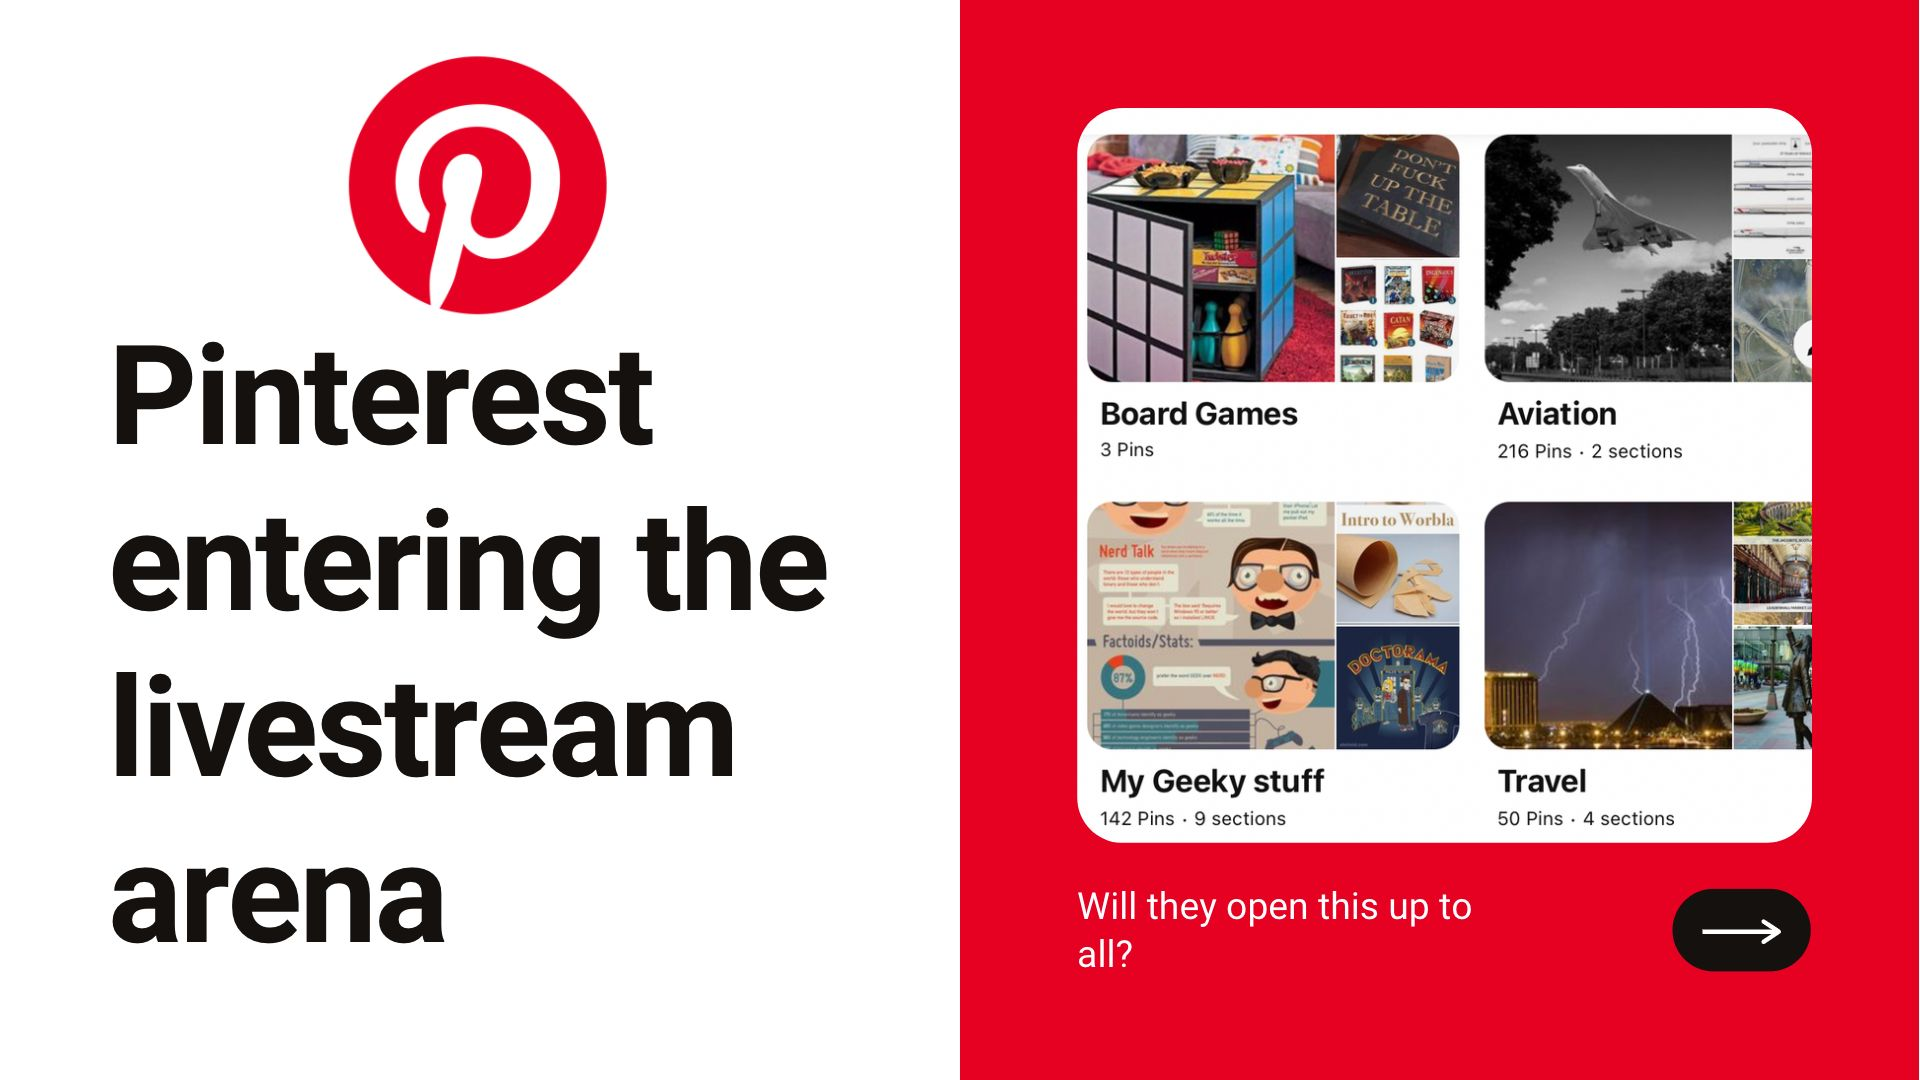 https://marketingelementsblog.com/2021/05/is-pinterest-adding-livestreams/